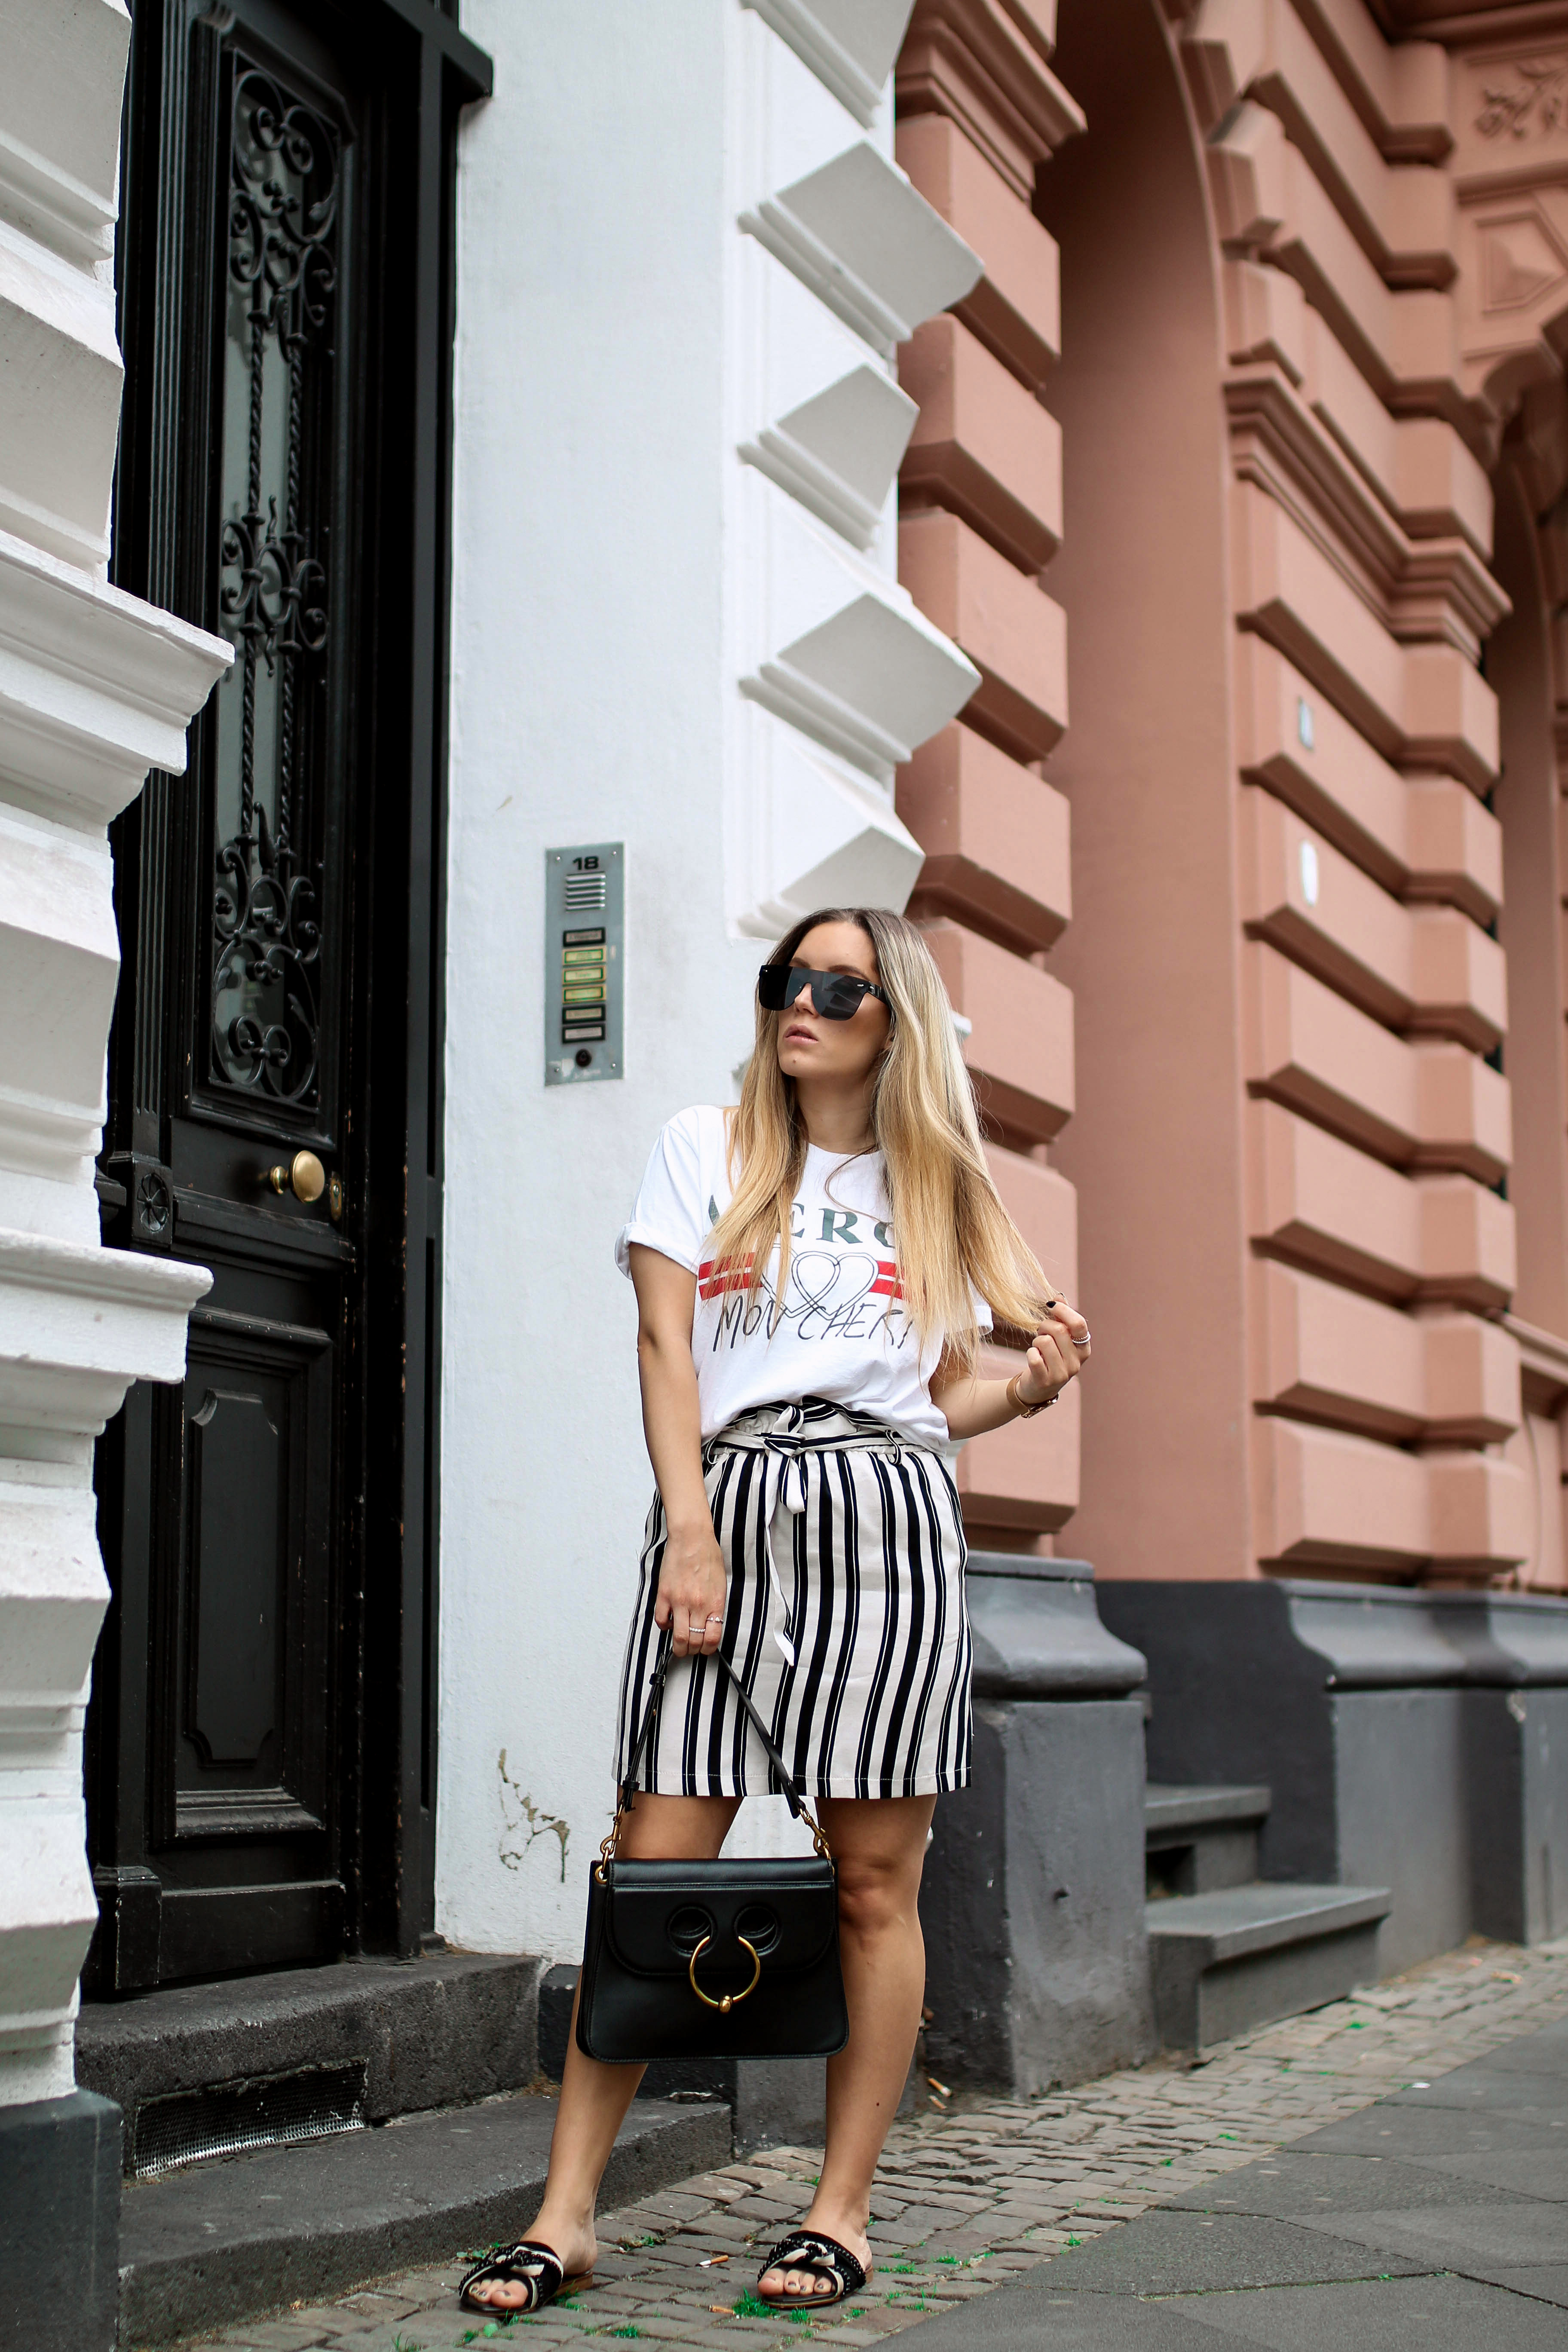 statement shirts gucci shirt lookalike topshop outfit post fashiontwinstinct piercing bag